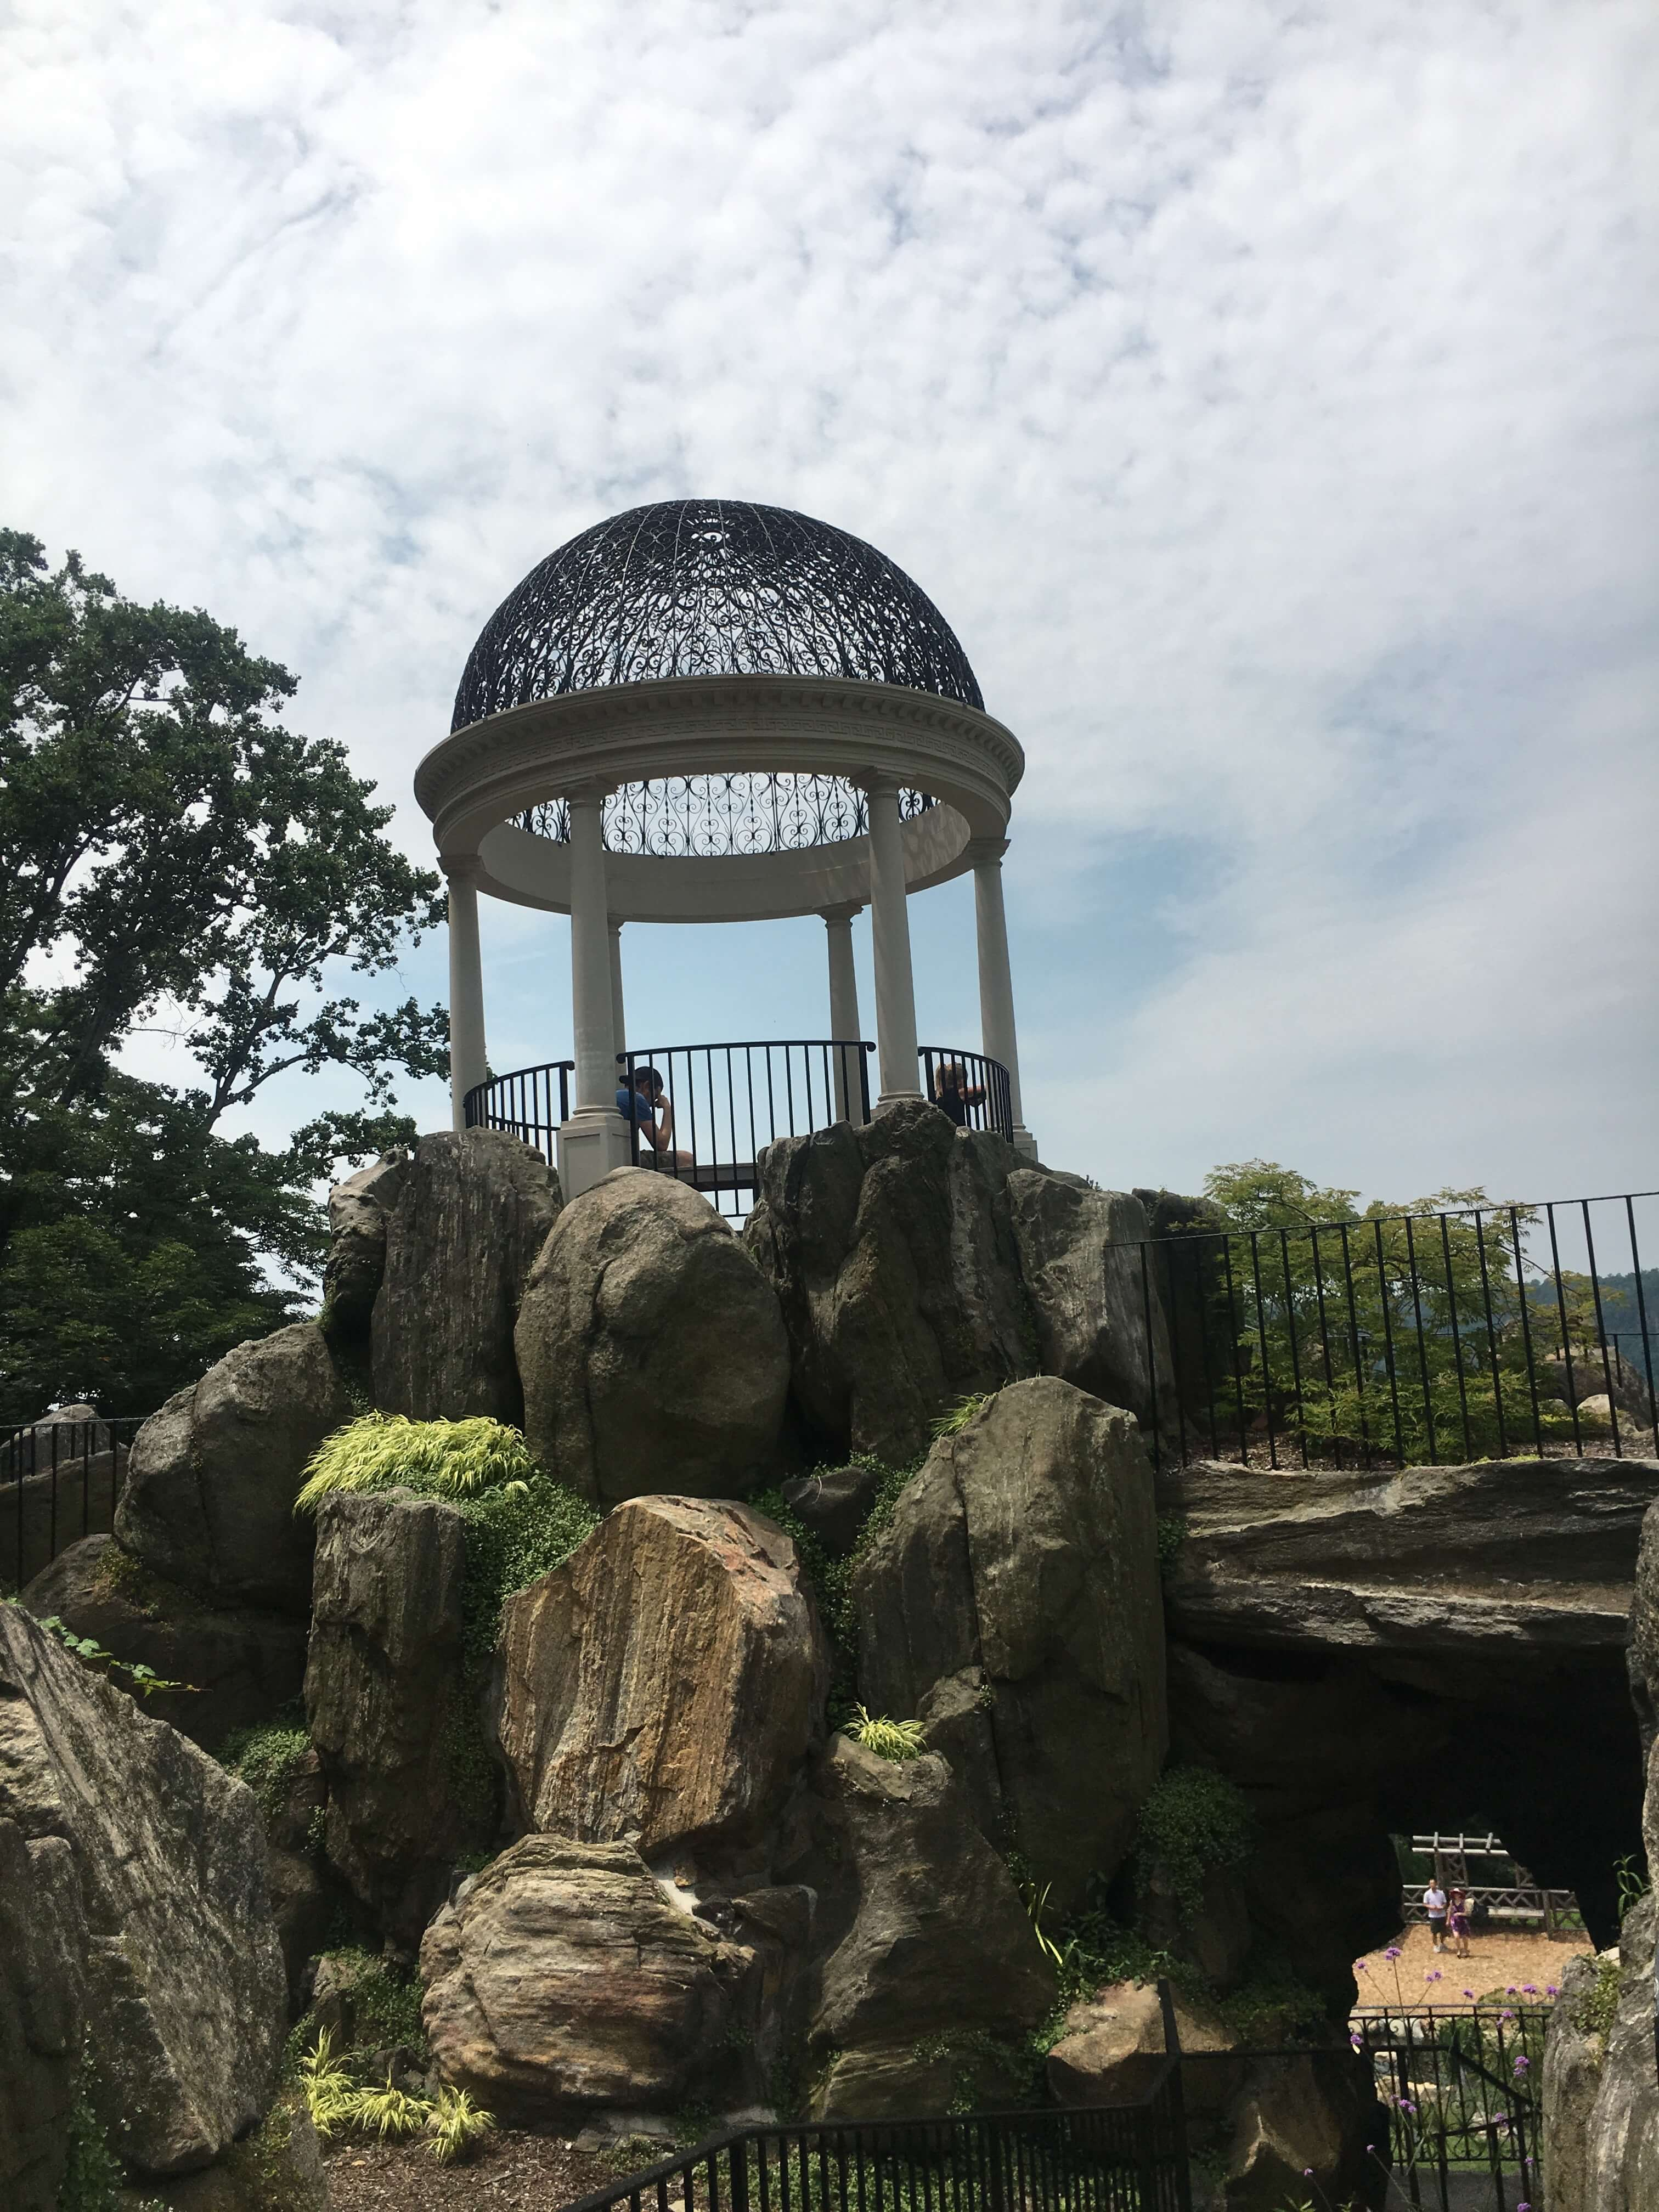 Day Trip to the Untermyer Gardens Conservatory temple of love